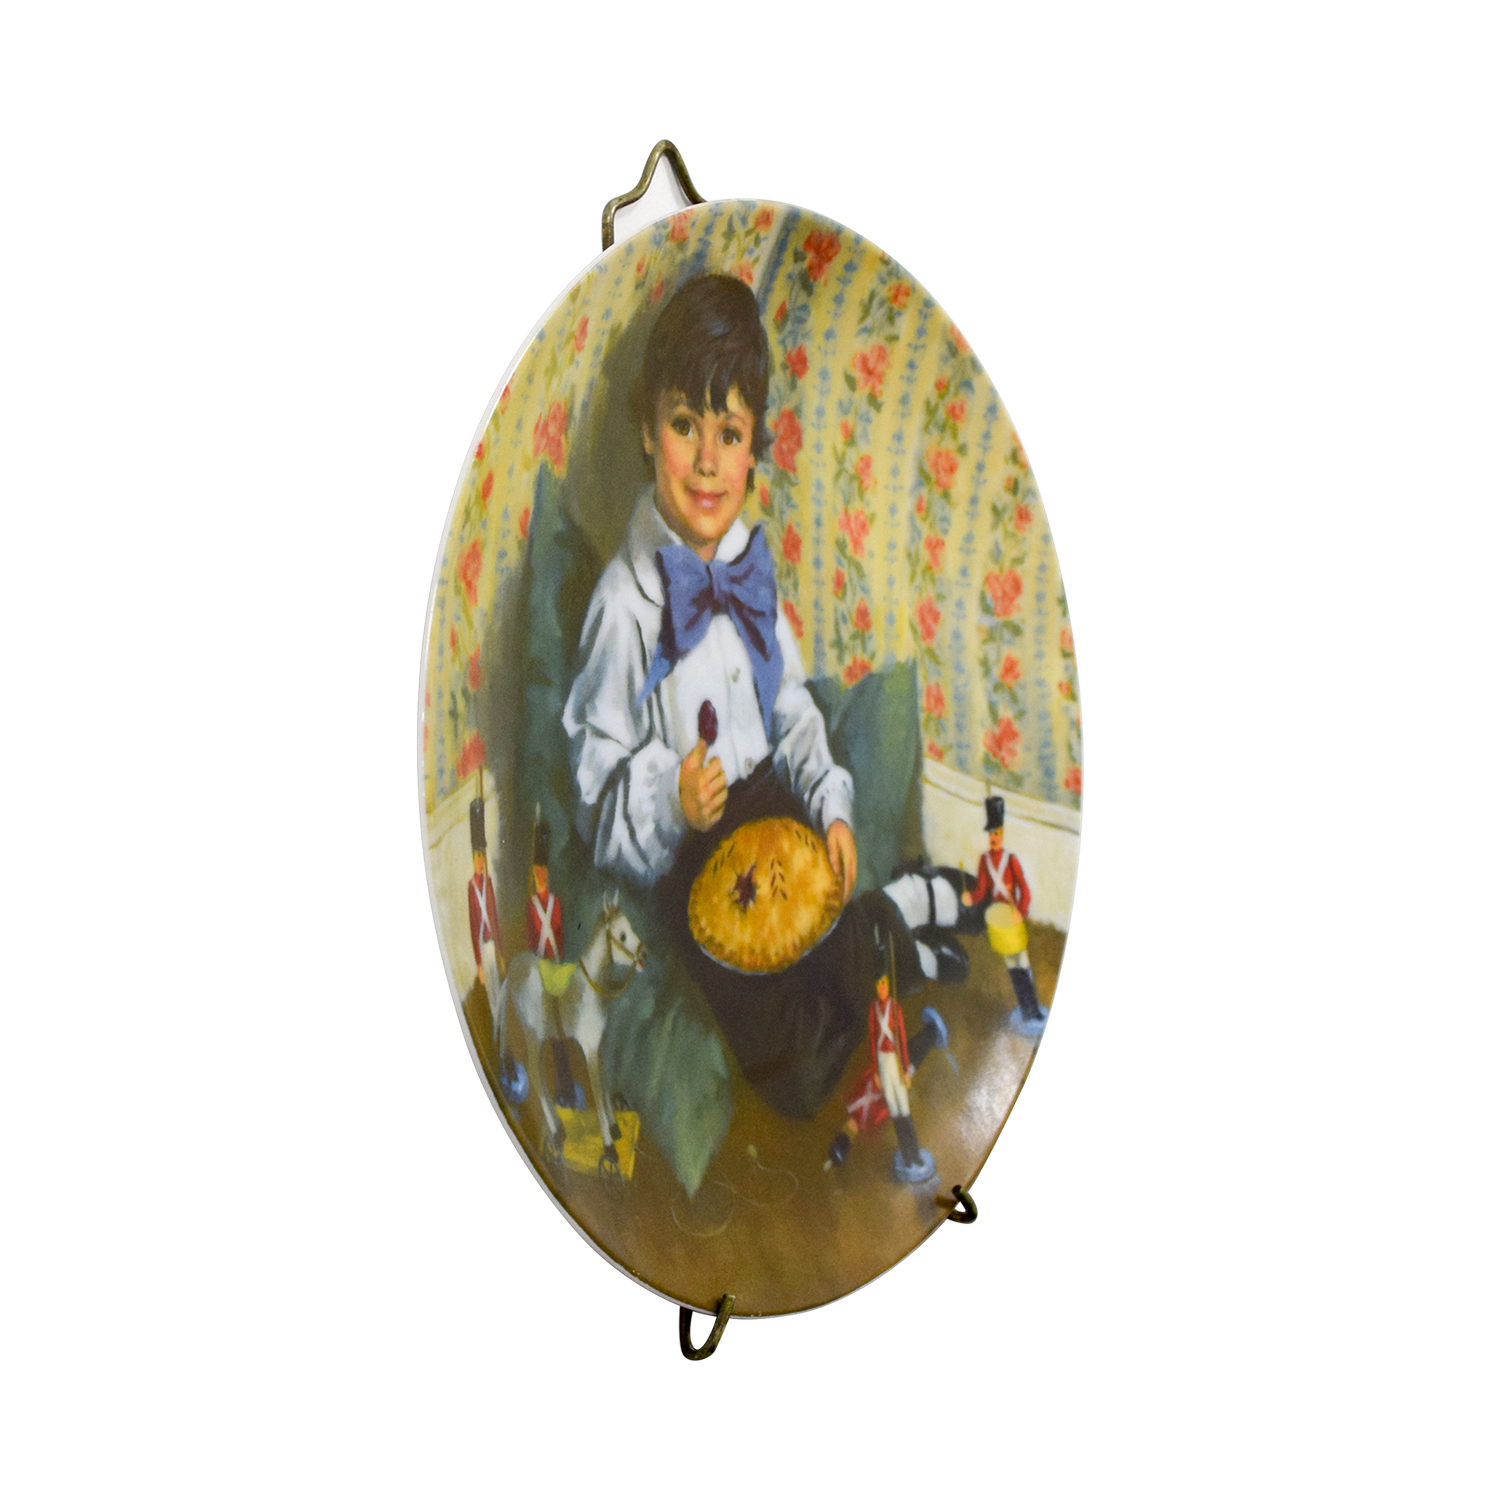 buy Edward M. Knowles Norman Rockwell Little Jack Horner Plate Edward M. Knowles Wall Art